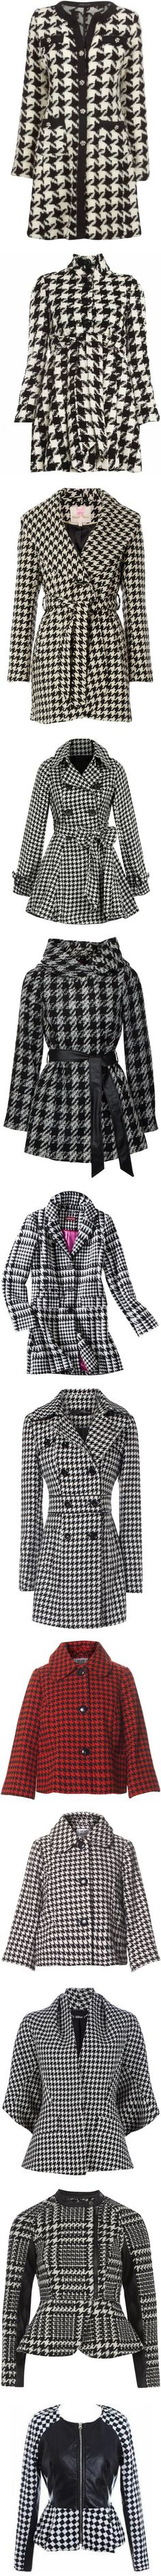 """""""Pied de poule (houndstooth)"""" by inmango ❤ liked on Polyvore"""